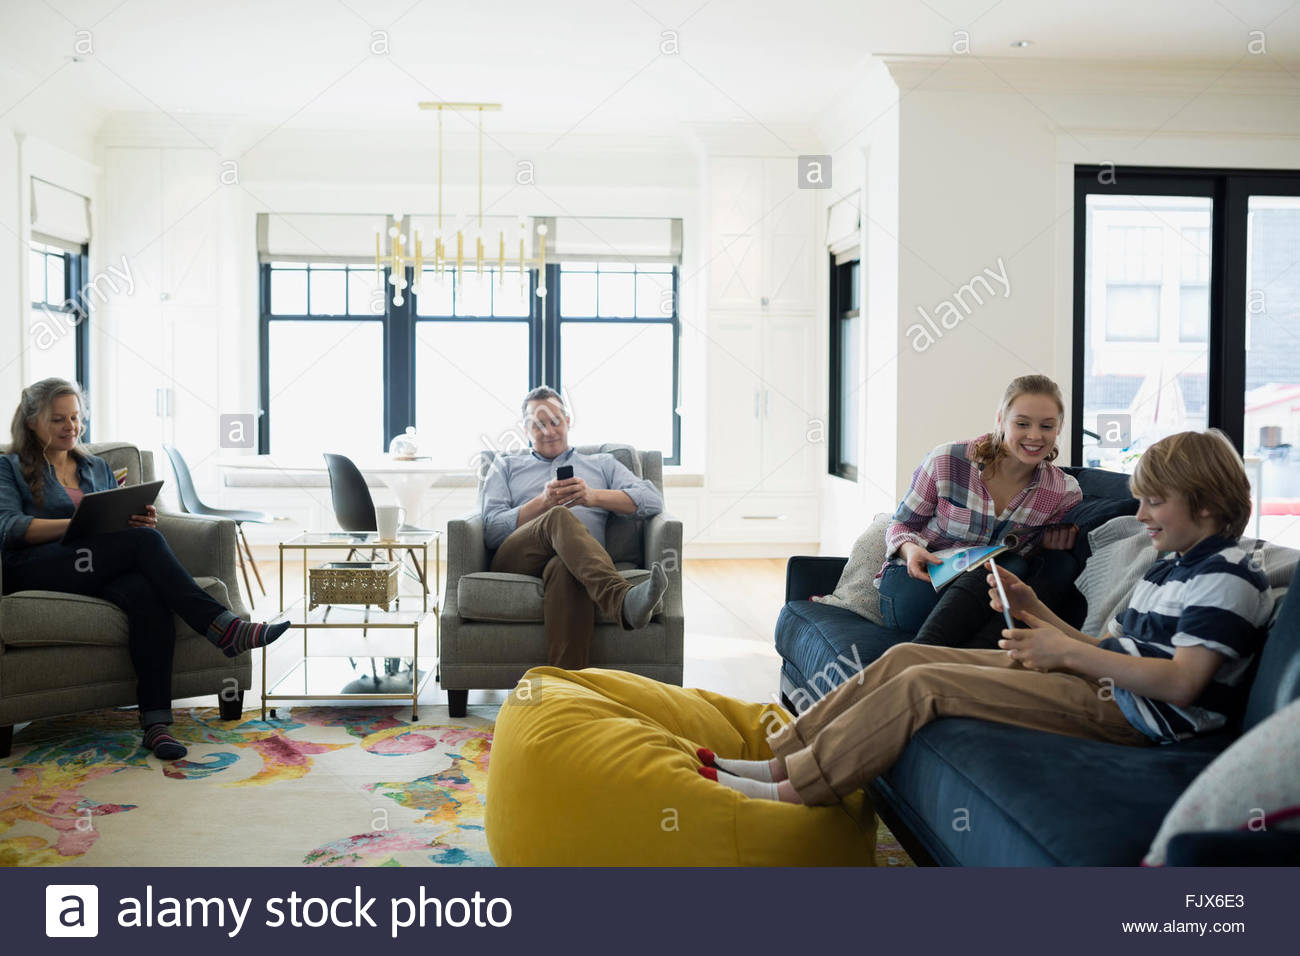 Family relaxing using technology in living room - Stock Image